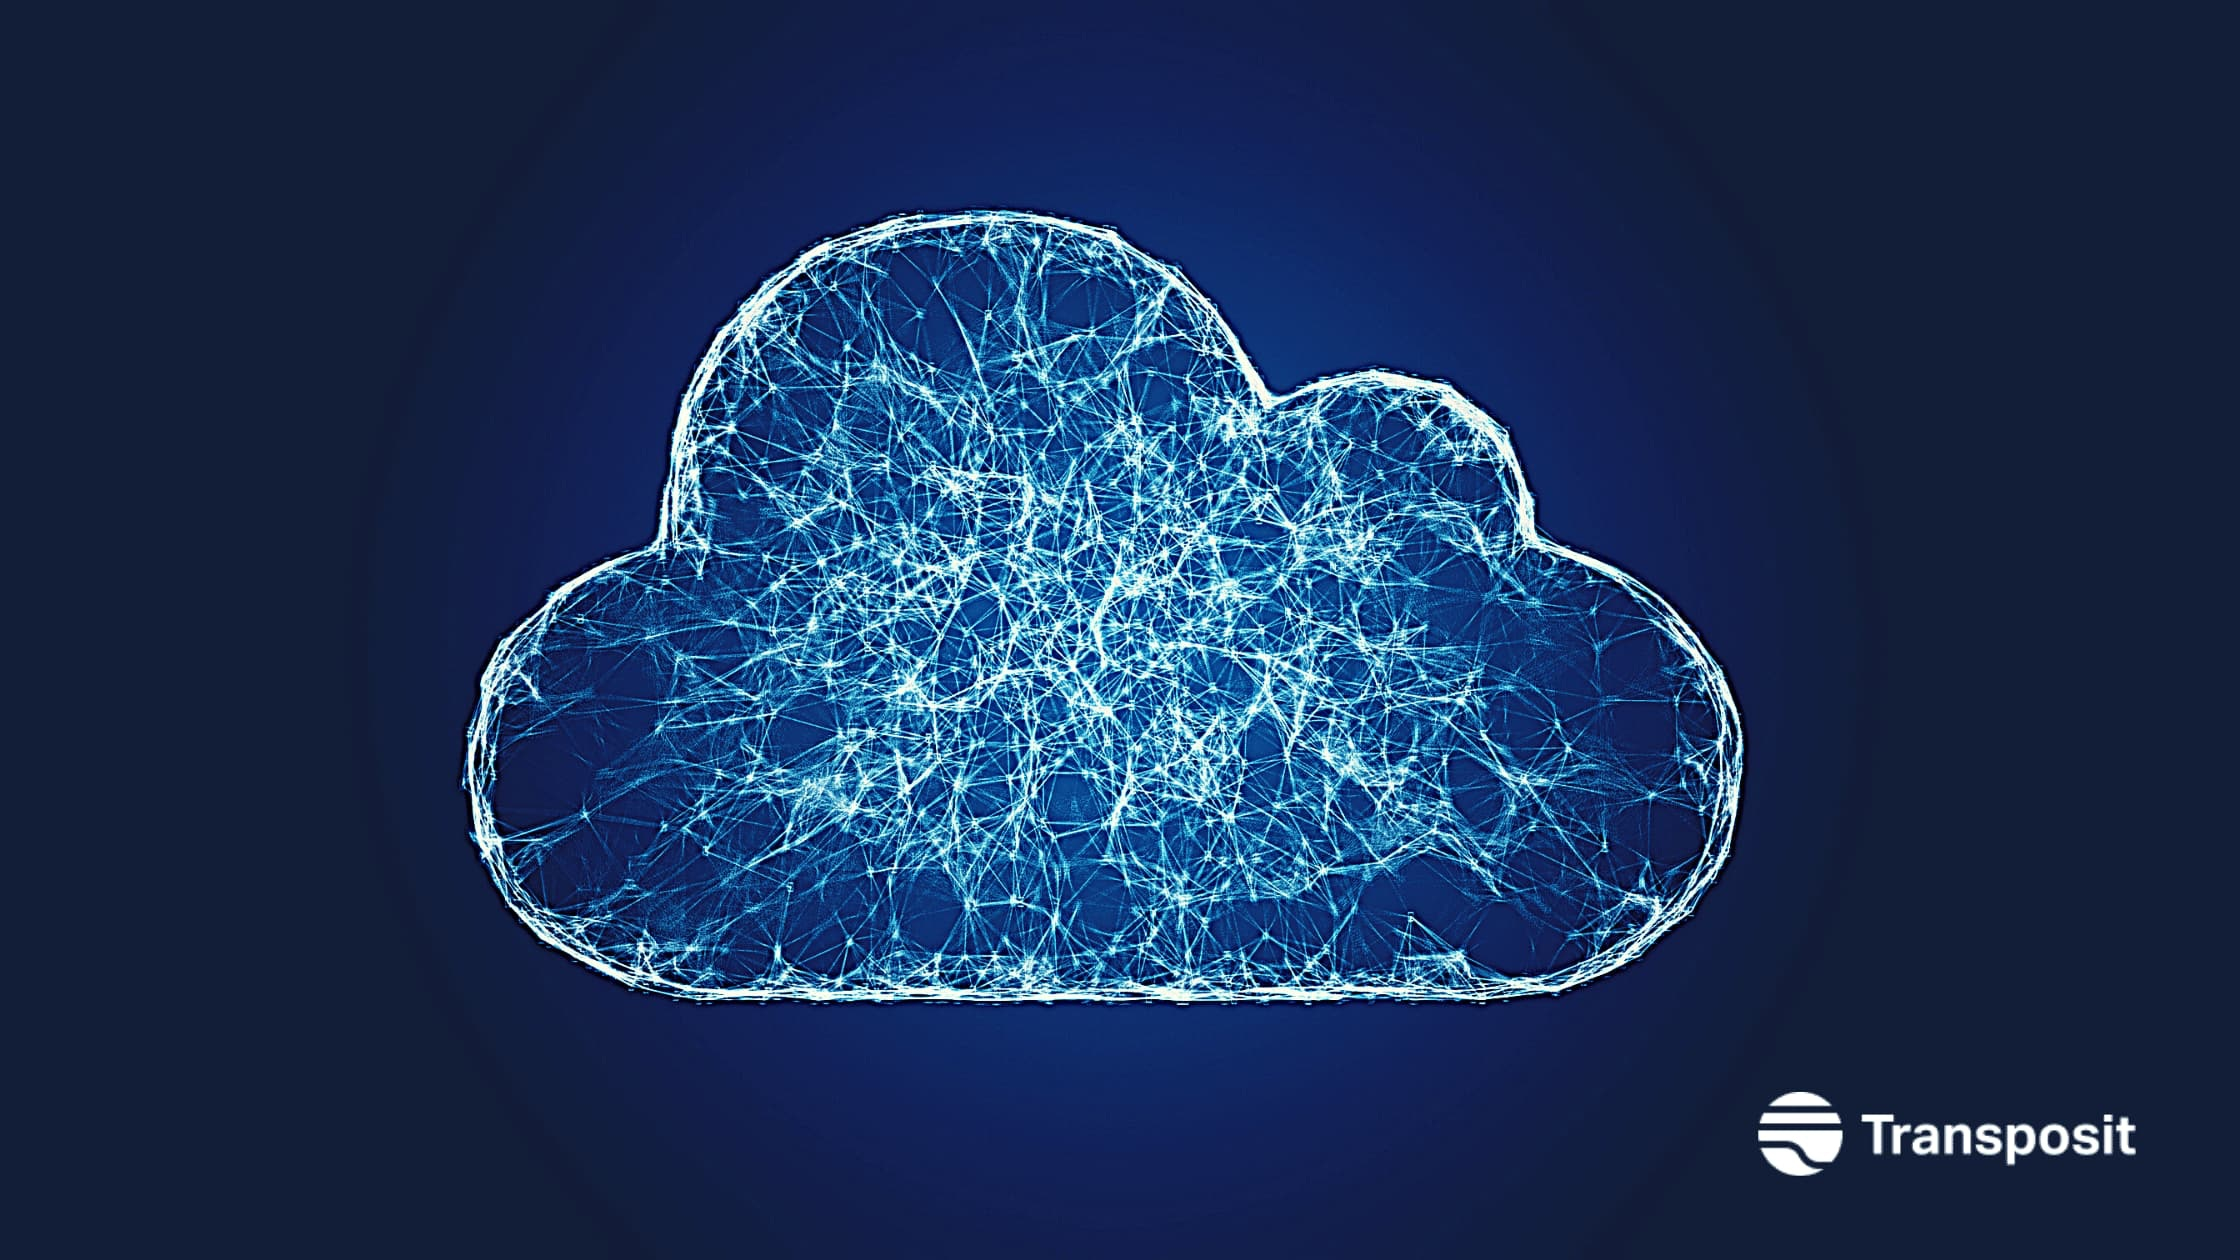 A picture of a cloud with a web of connections inside of it